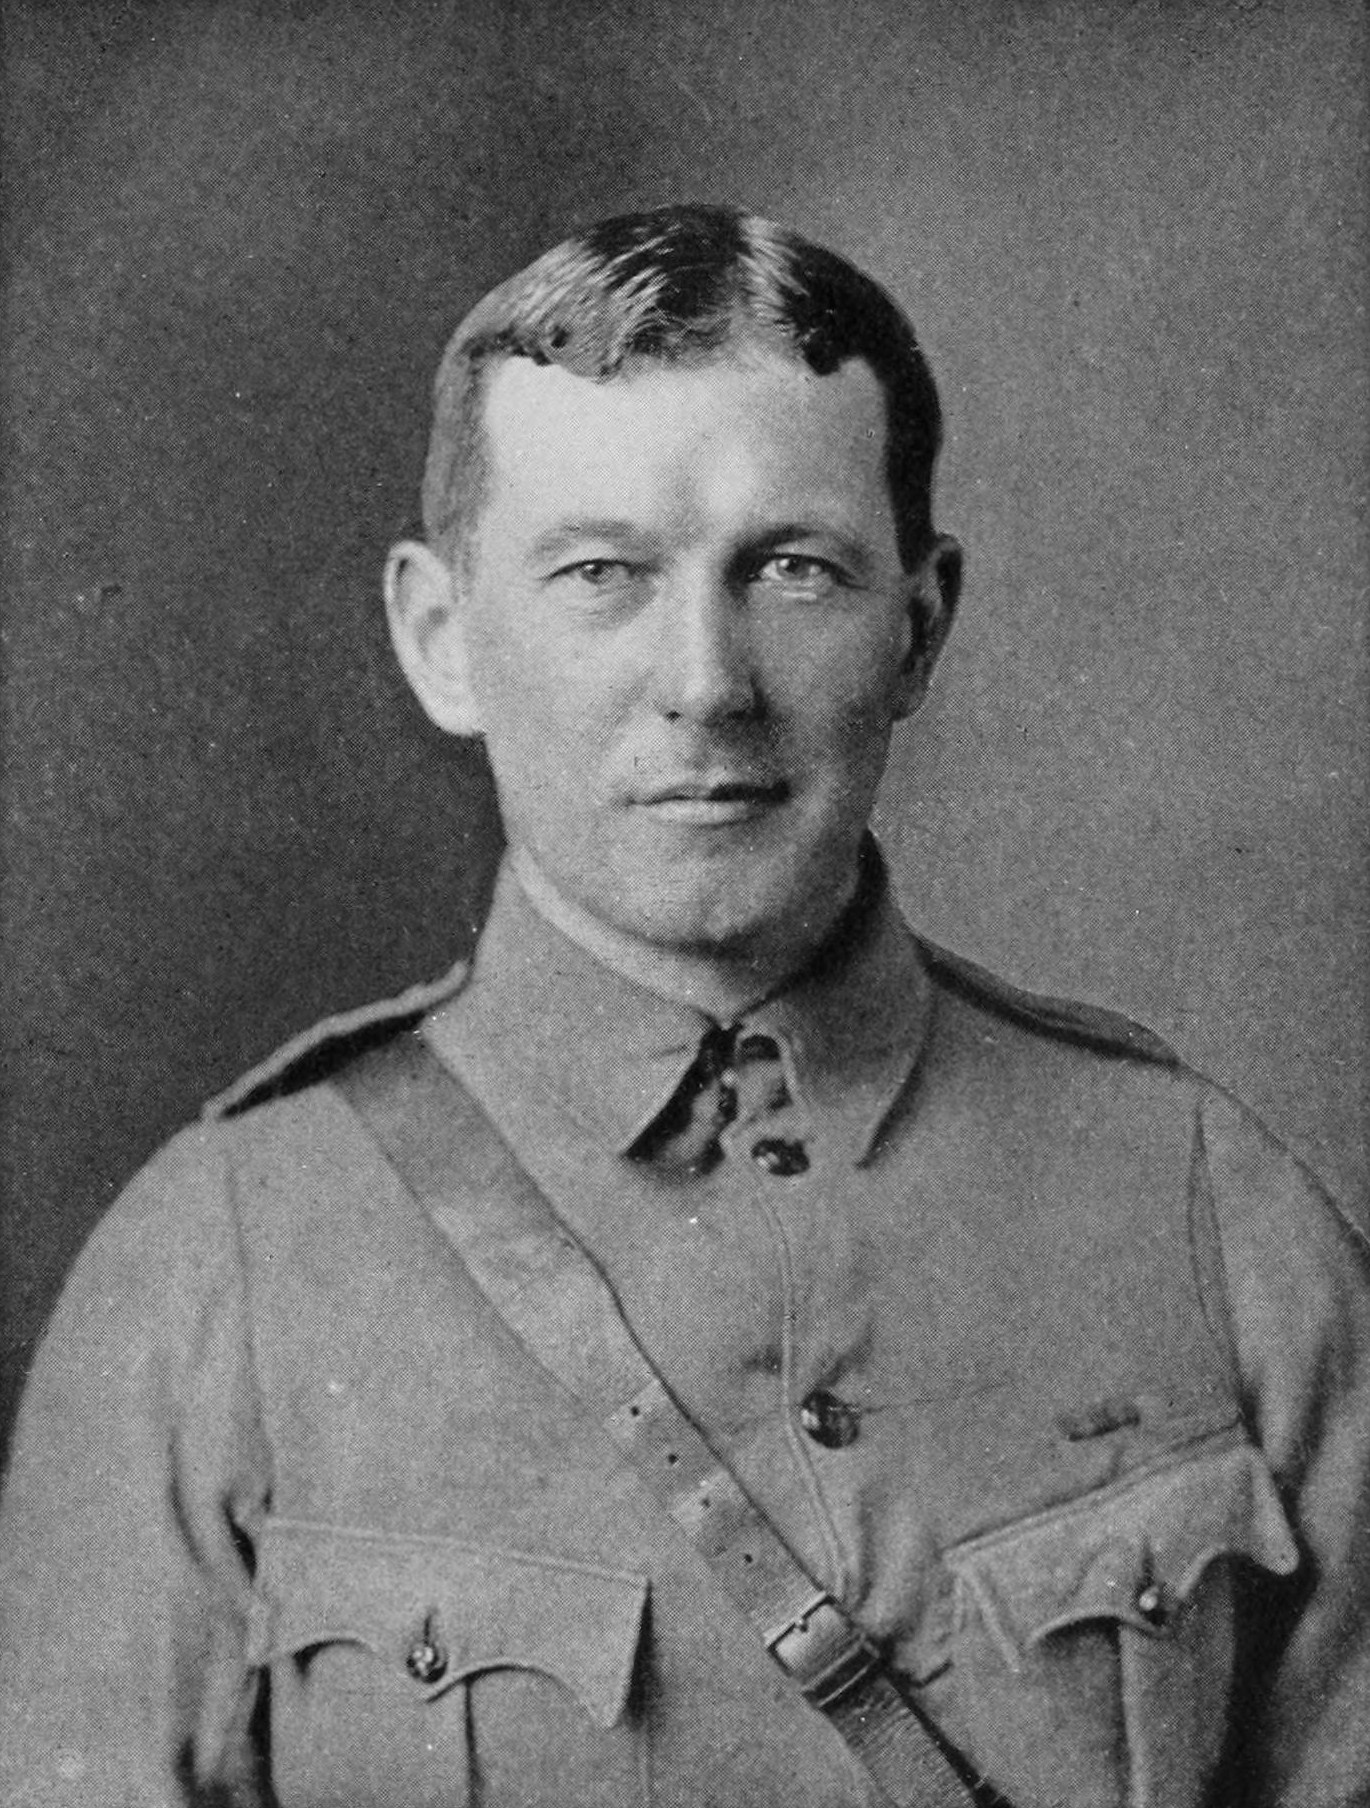 Lieut. Col. John McCrae M.D. A minute ago you were desperate to change the sex subject.